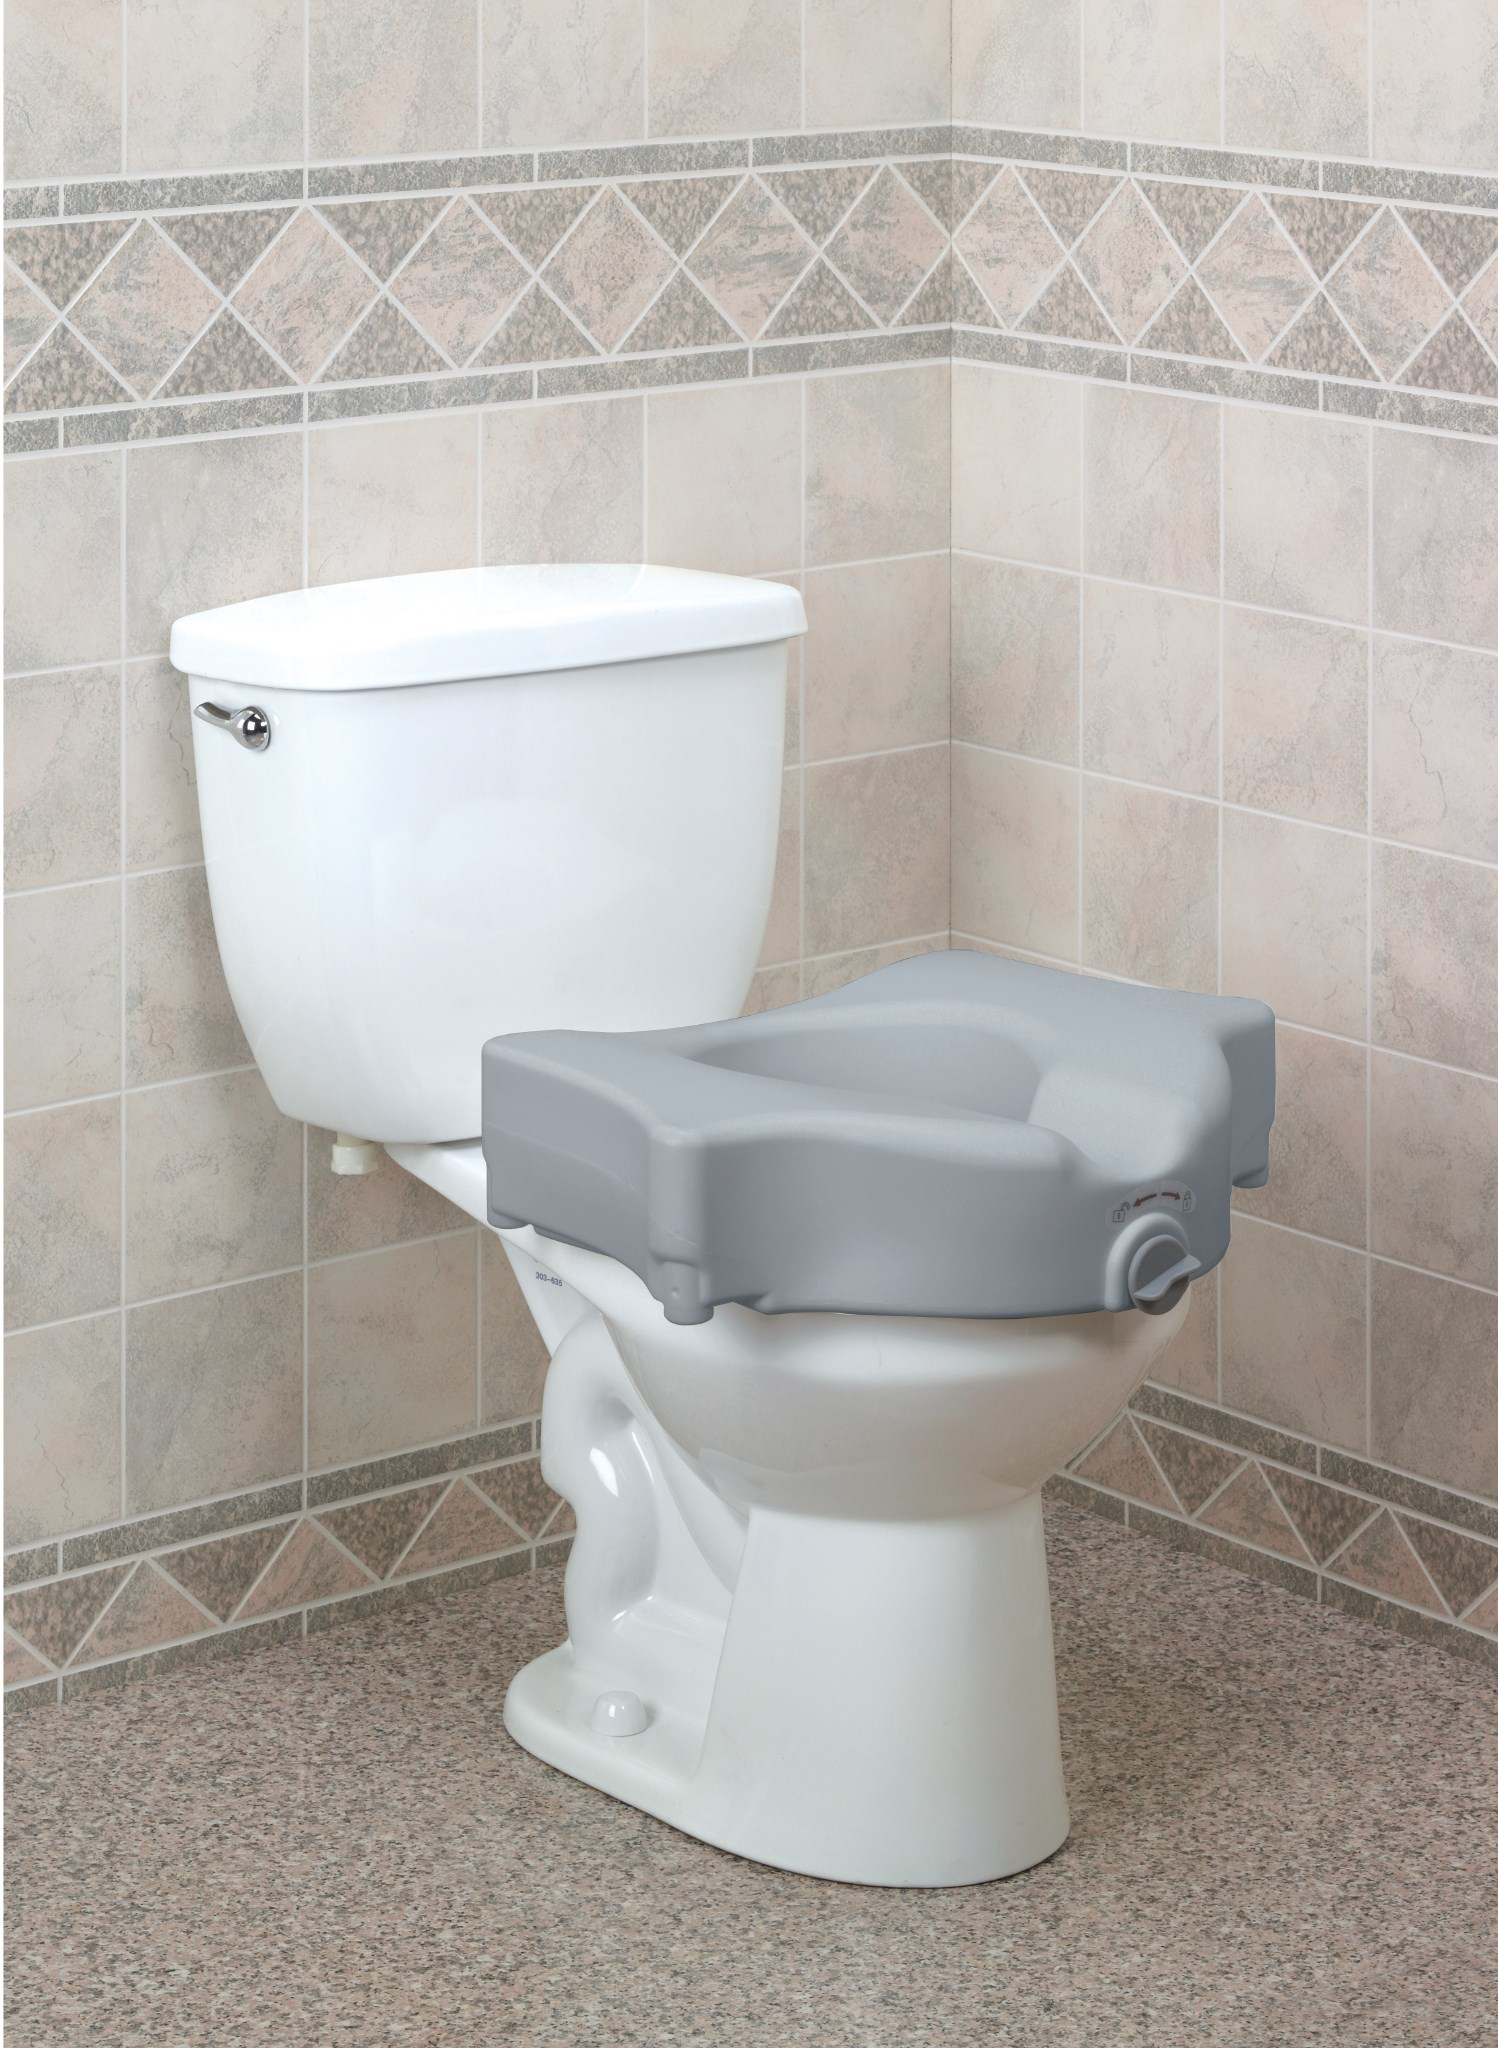 New bariatric locking toilet seat released